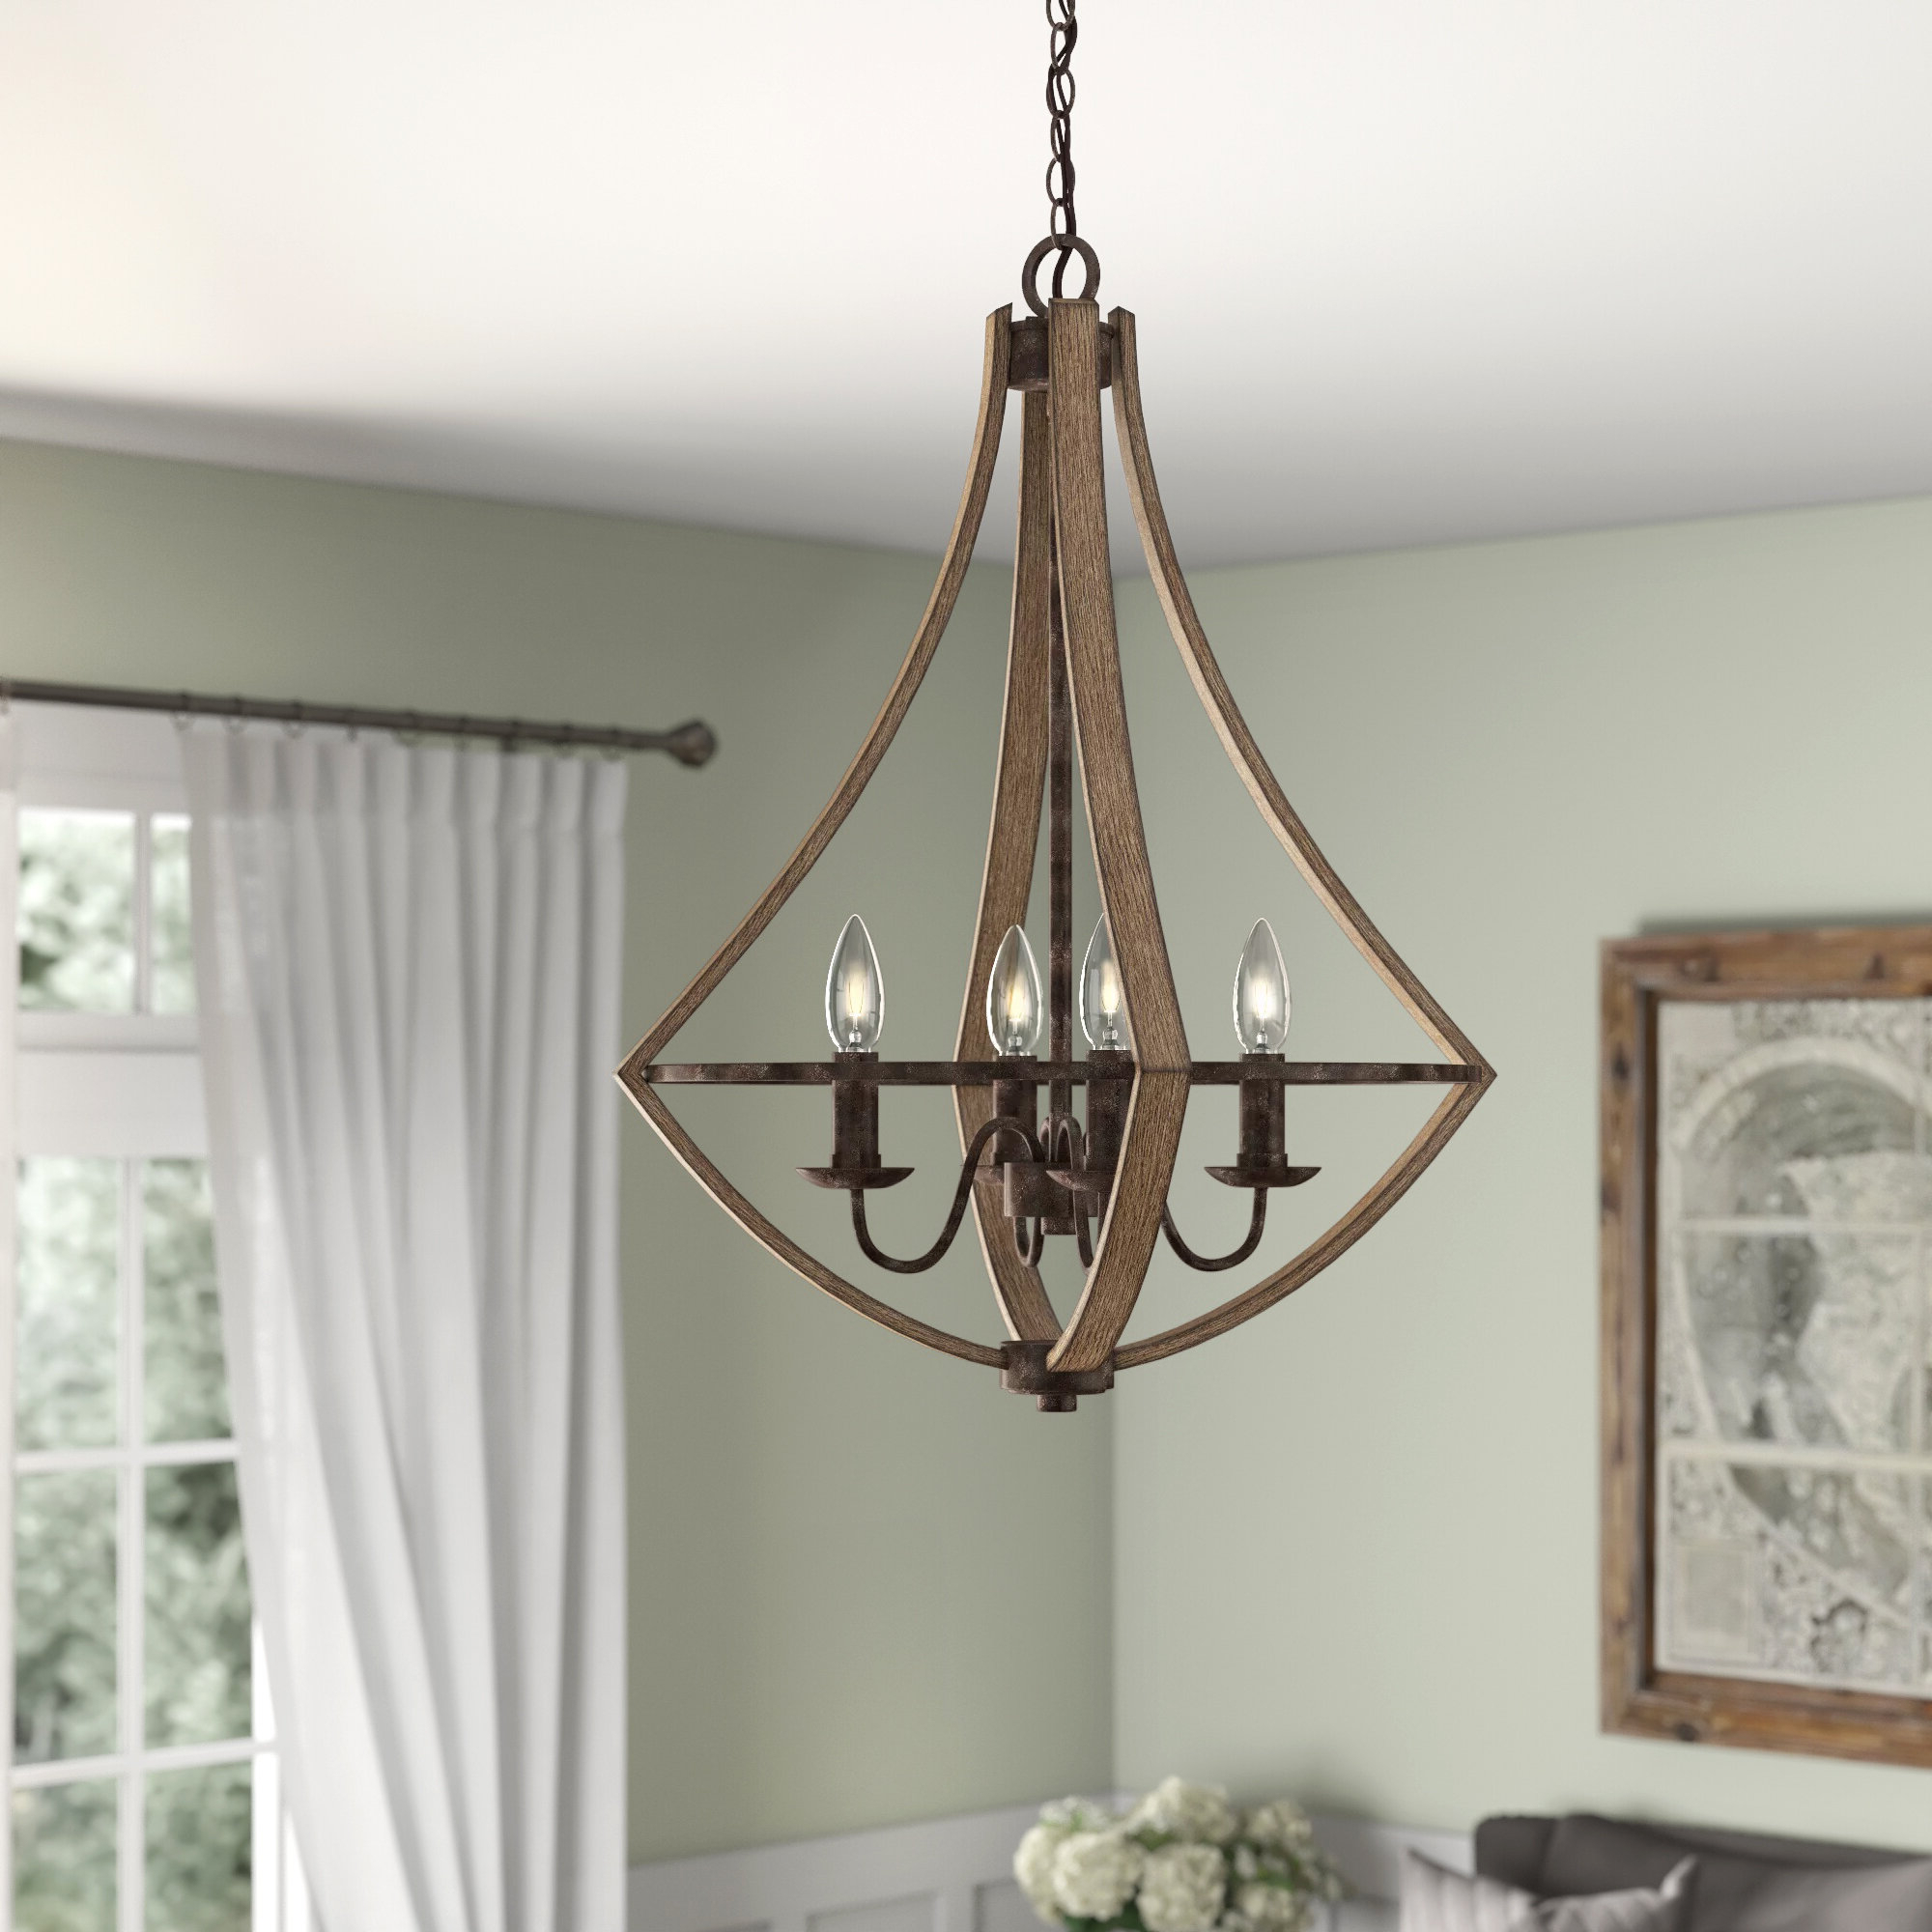 Famous Wadlington 6 Light Single Cylinder Pendants With Regard To Reimers 4 Light Candle Style Chandelier (View 16 of 20)